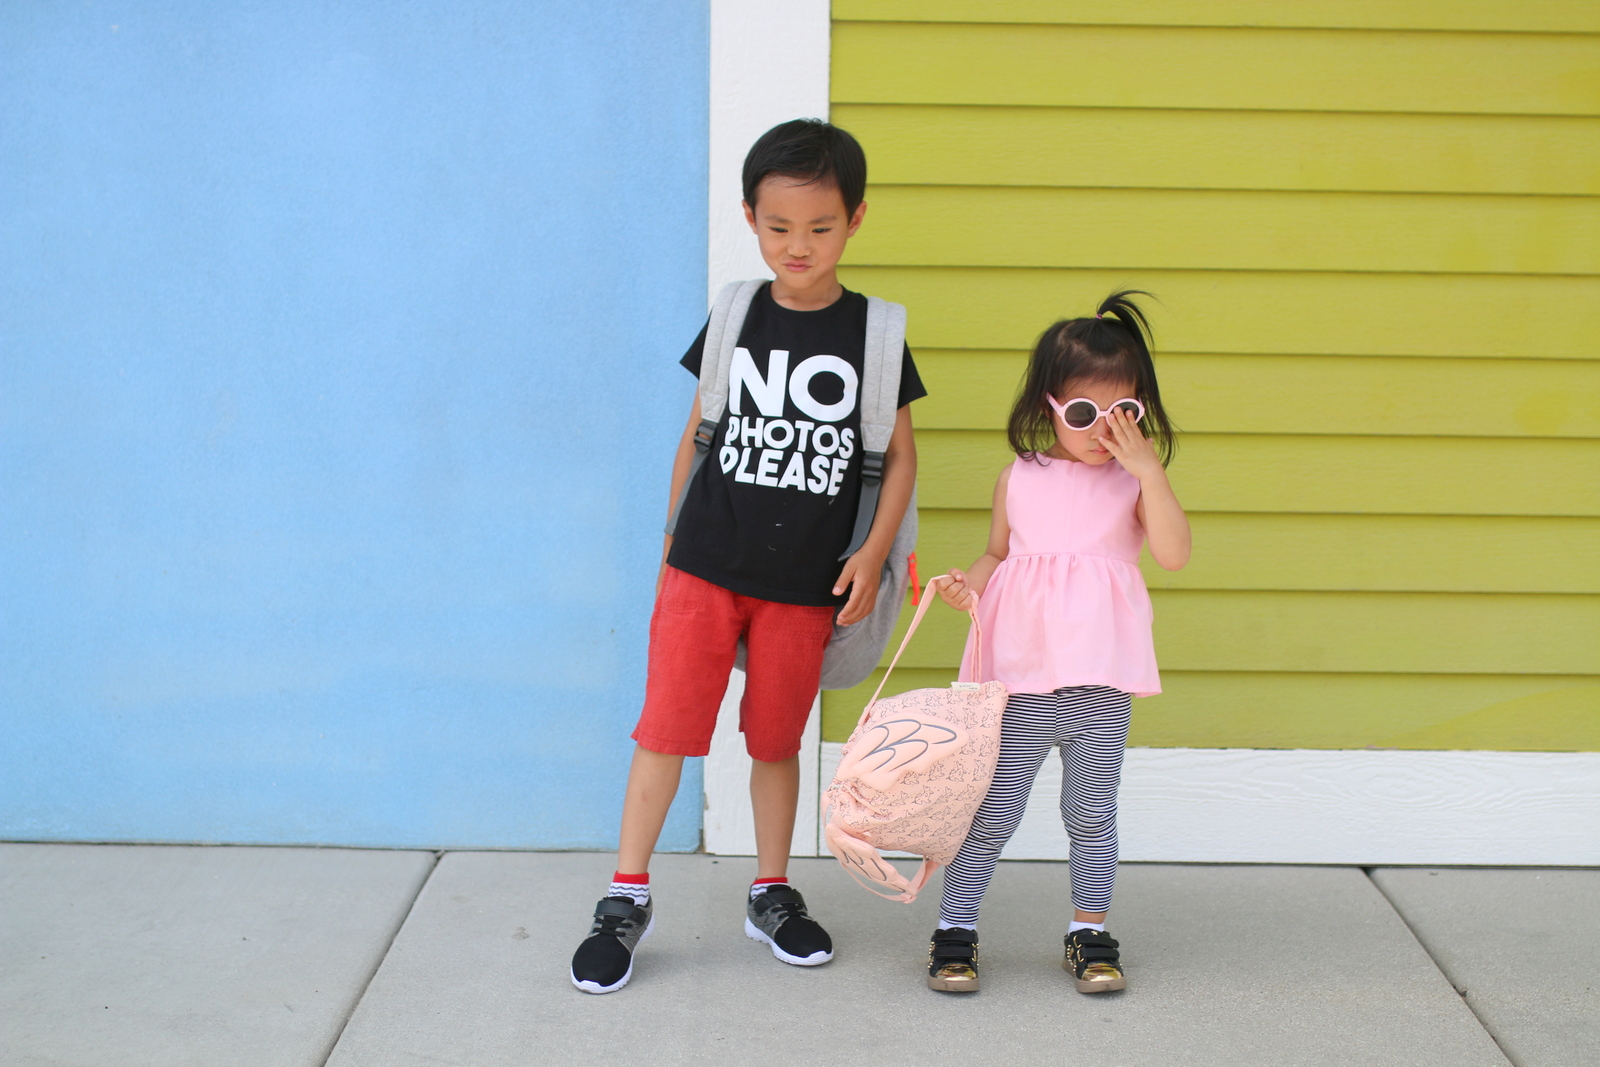 Back To School Must Have Shoes From KidsShoes.Com by Utah fashion blogger SandyALaMode